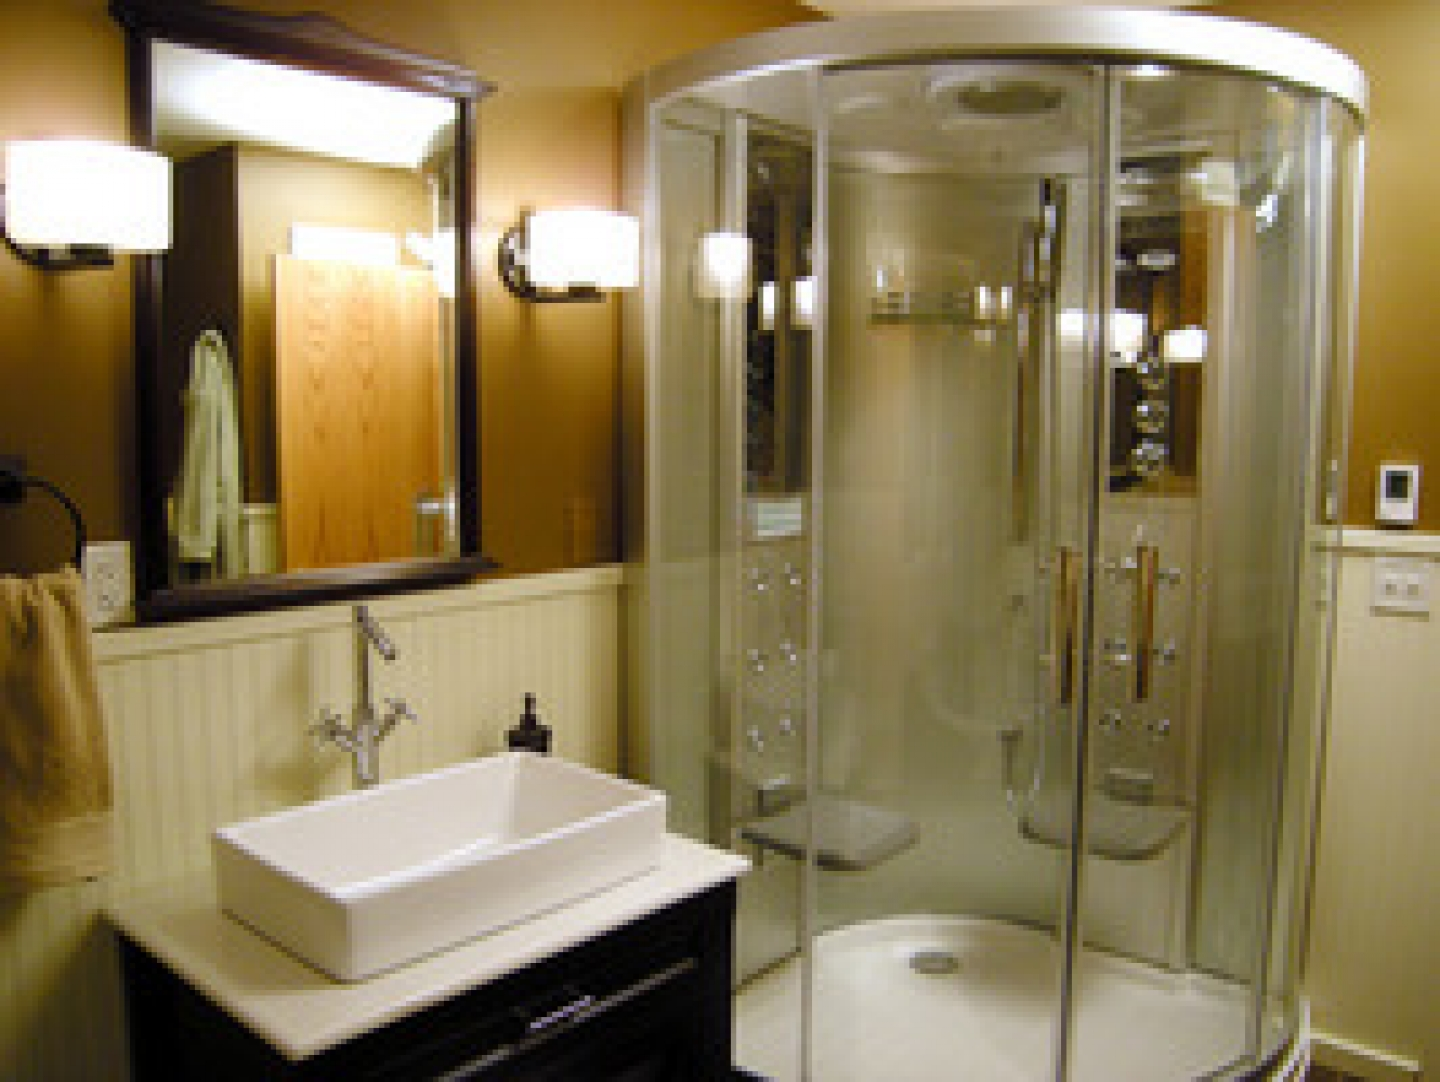 bathroom makeovers photo    5. Bathroom makeovers   large and beautiful photos  Photo to select